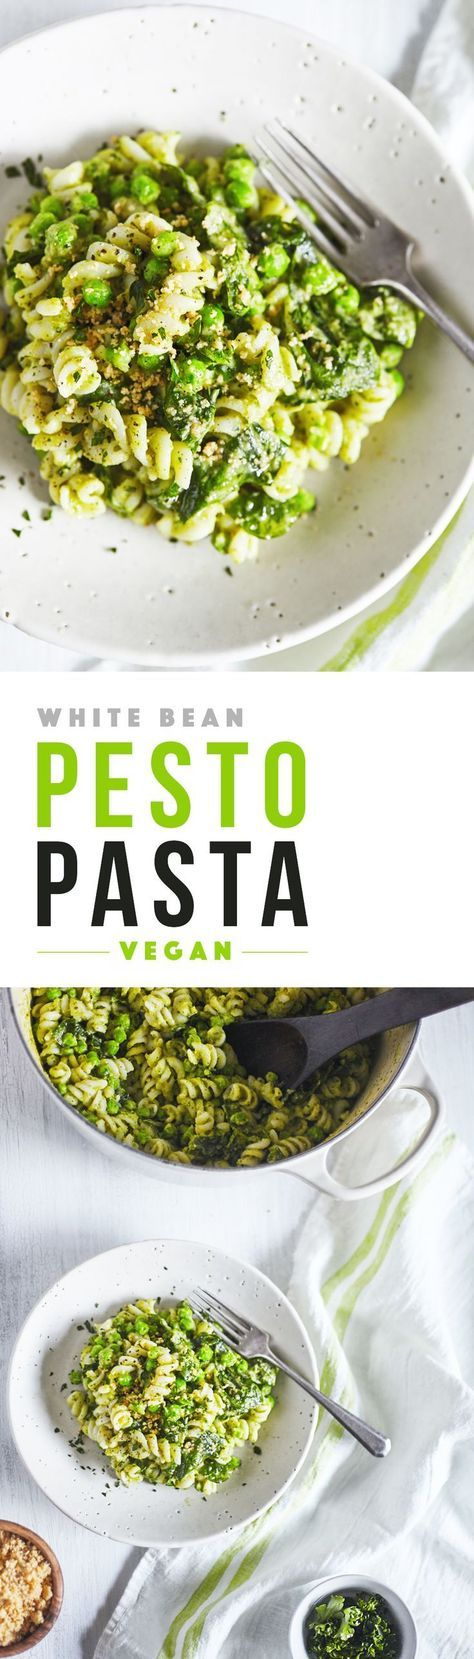 A delicious vegan pasta featuring a creamy white bean pesto sauce. White beans make the sauce extra creamy and are a great source of added protein. Top with homemade brazil nut parmesan.